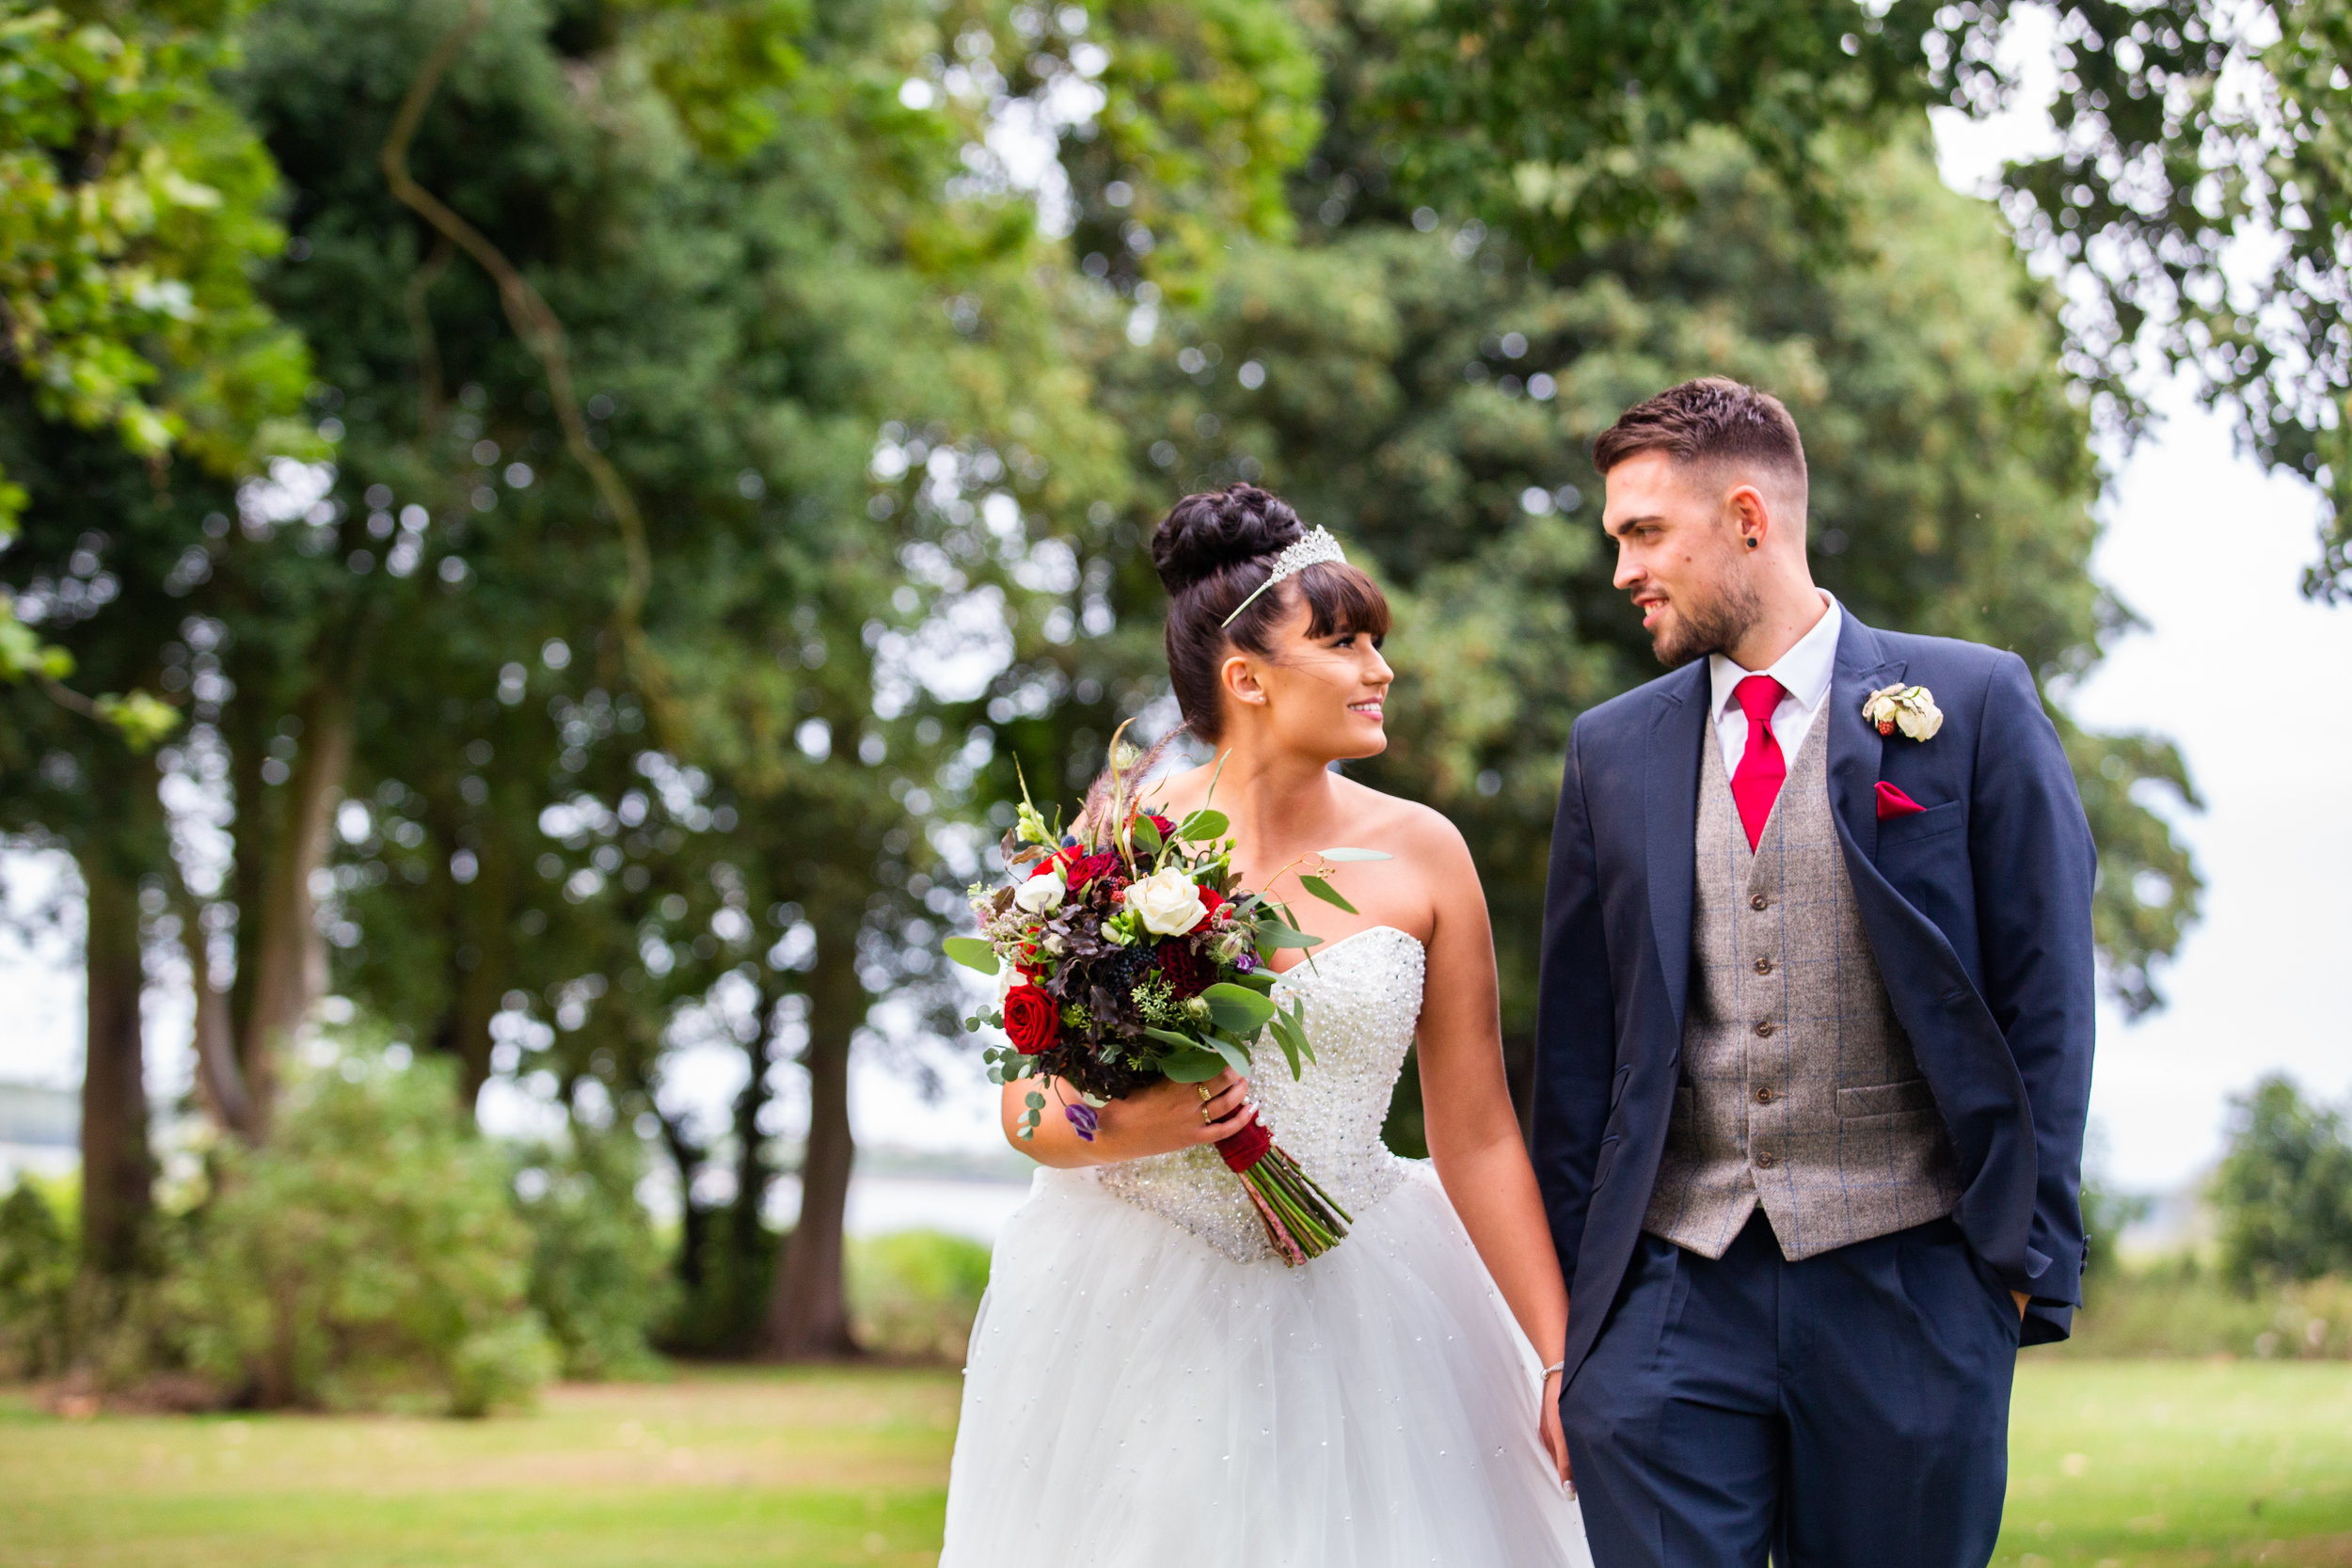 Leicestershire wedding photography